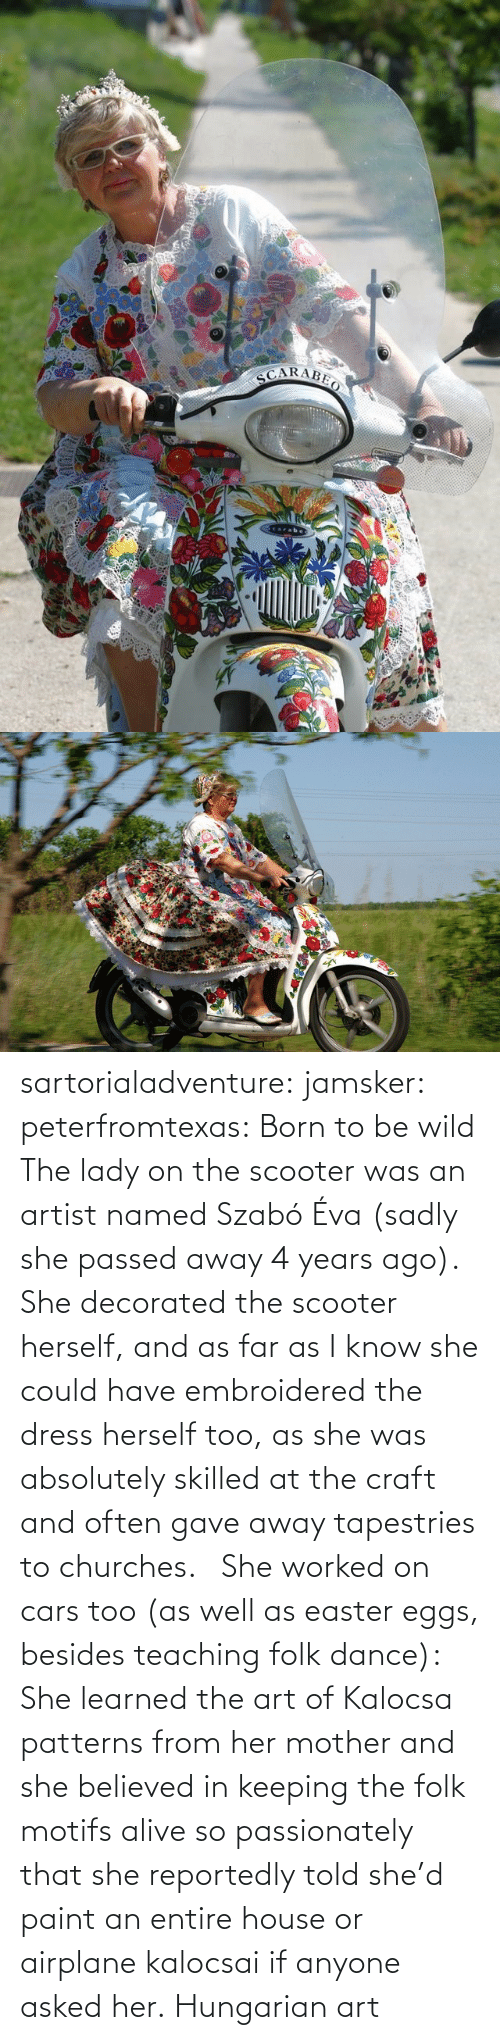 eggs: sartorialadventure: jamsker:  peterfromtexas: Born to be wild The lady on the scooter was an artist named Szabó Éva (sadly she passed away 4 years ago). She decorated the scooter herself, and as far as I know she could have embroidered the dress herself too, as she was absolutely skilled at the craft and often gave away tapestries to churches.   She worked on cars too (as well as easter eggs, besides teaching folk dance): She learned the art of Kalocsa patterns from her mother and she believed in keeping the folk motifs alive so passionately that she reportedly told she'd paint an entire house or airplane kalocsai if anyone asked her.  Hungarian art